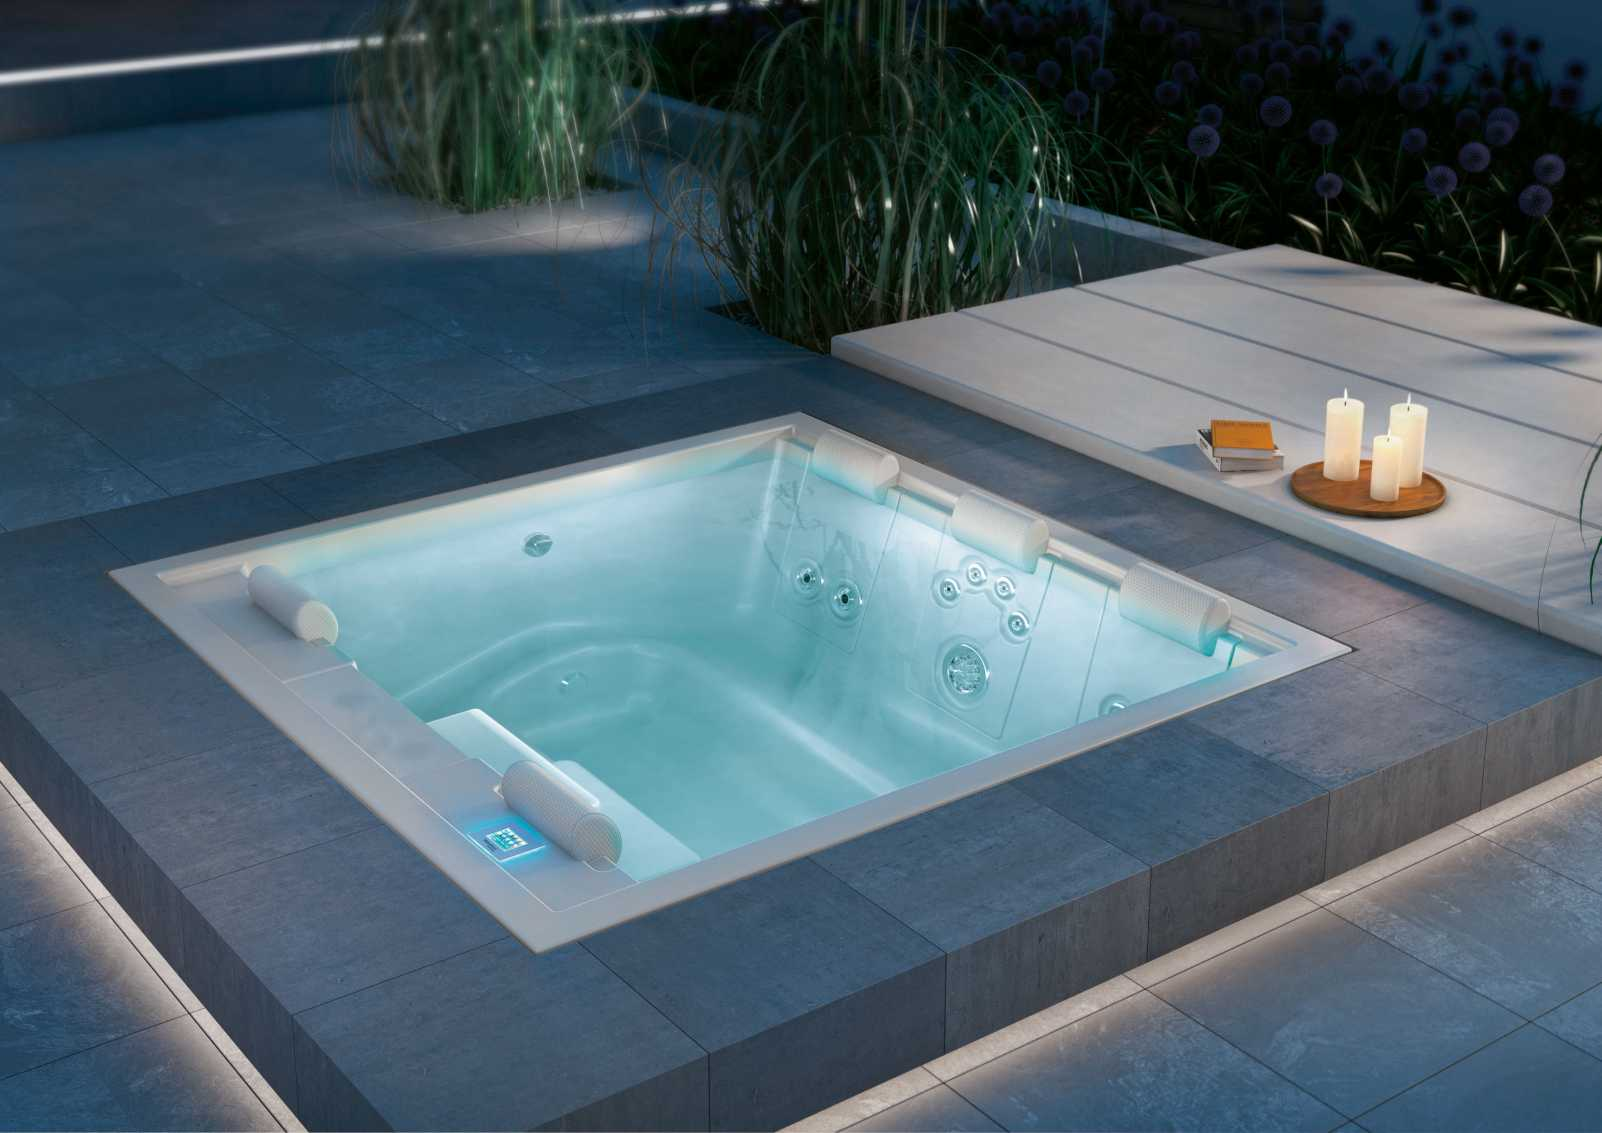 outdoor whirlpool tubs whirlpool loopele com intex. Black Bedroom Furniture Sets. Home Design Ideas